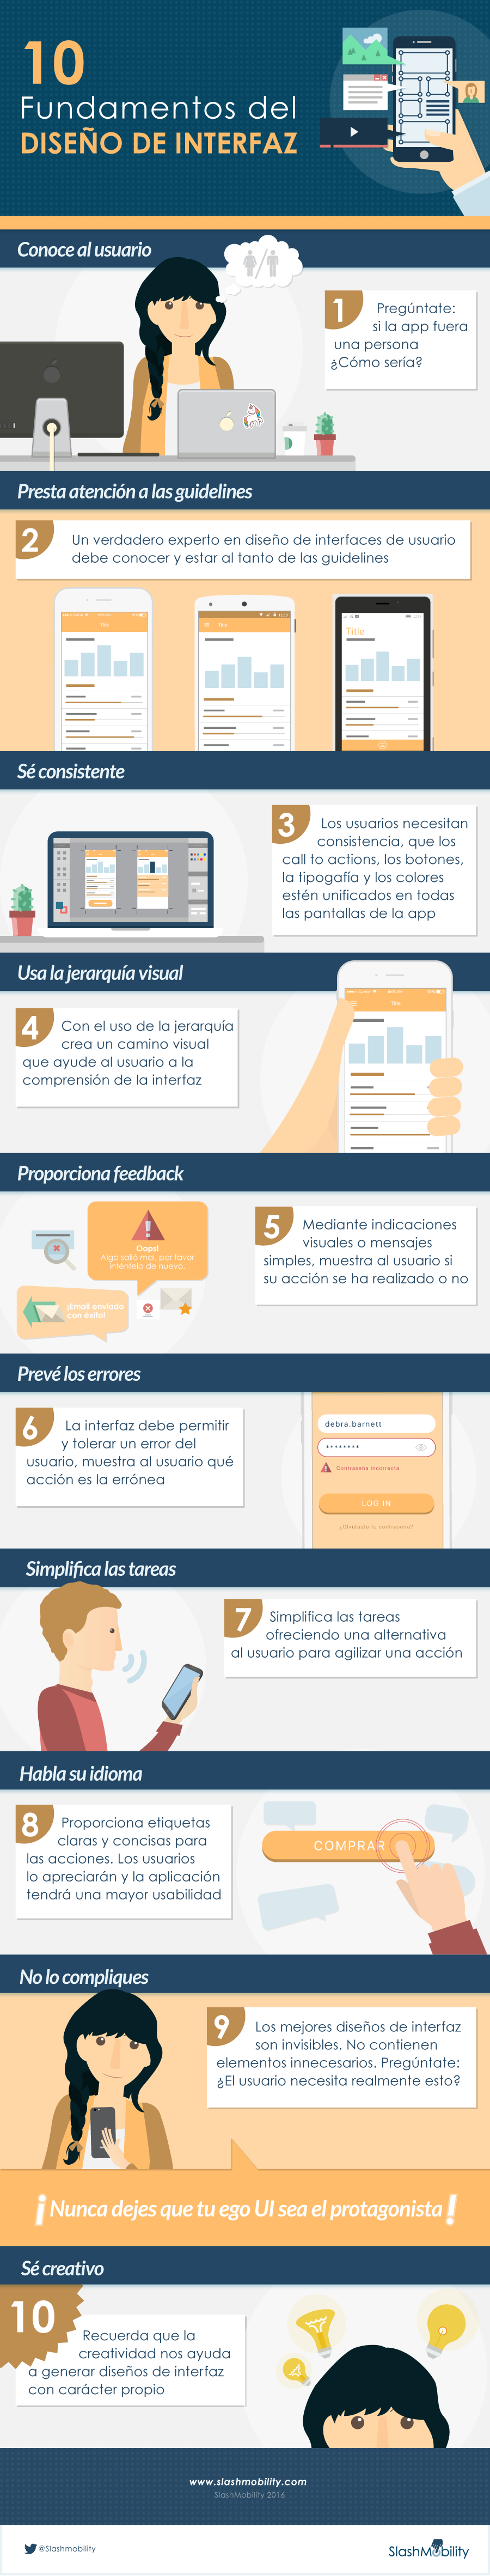 infografia-fundamentos-diseno-interfaz-apps